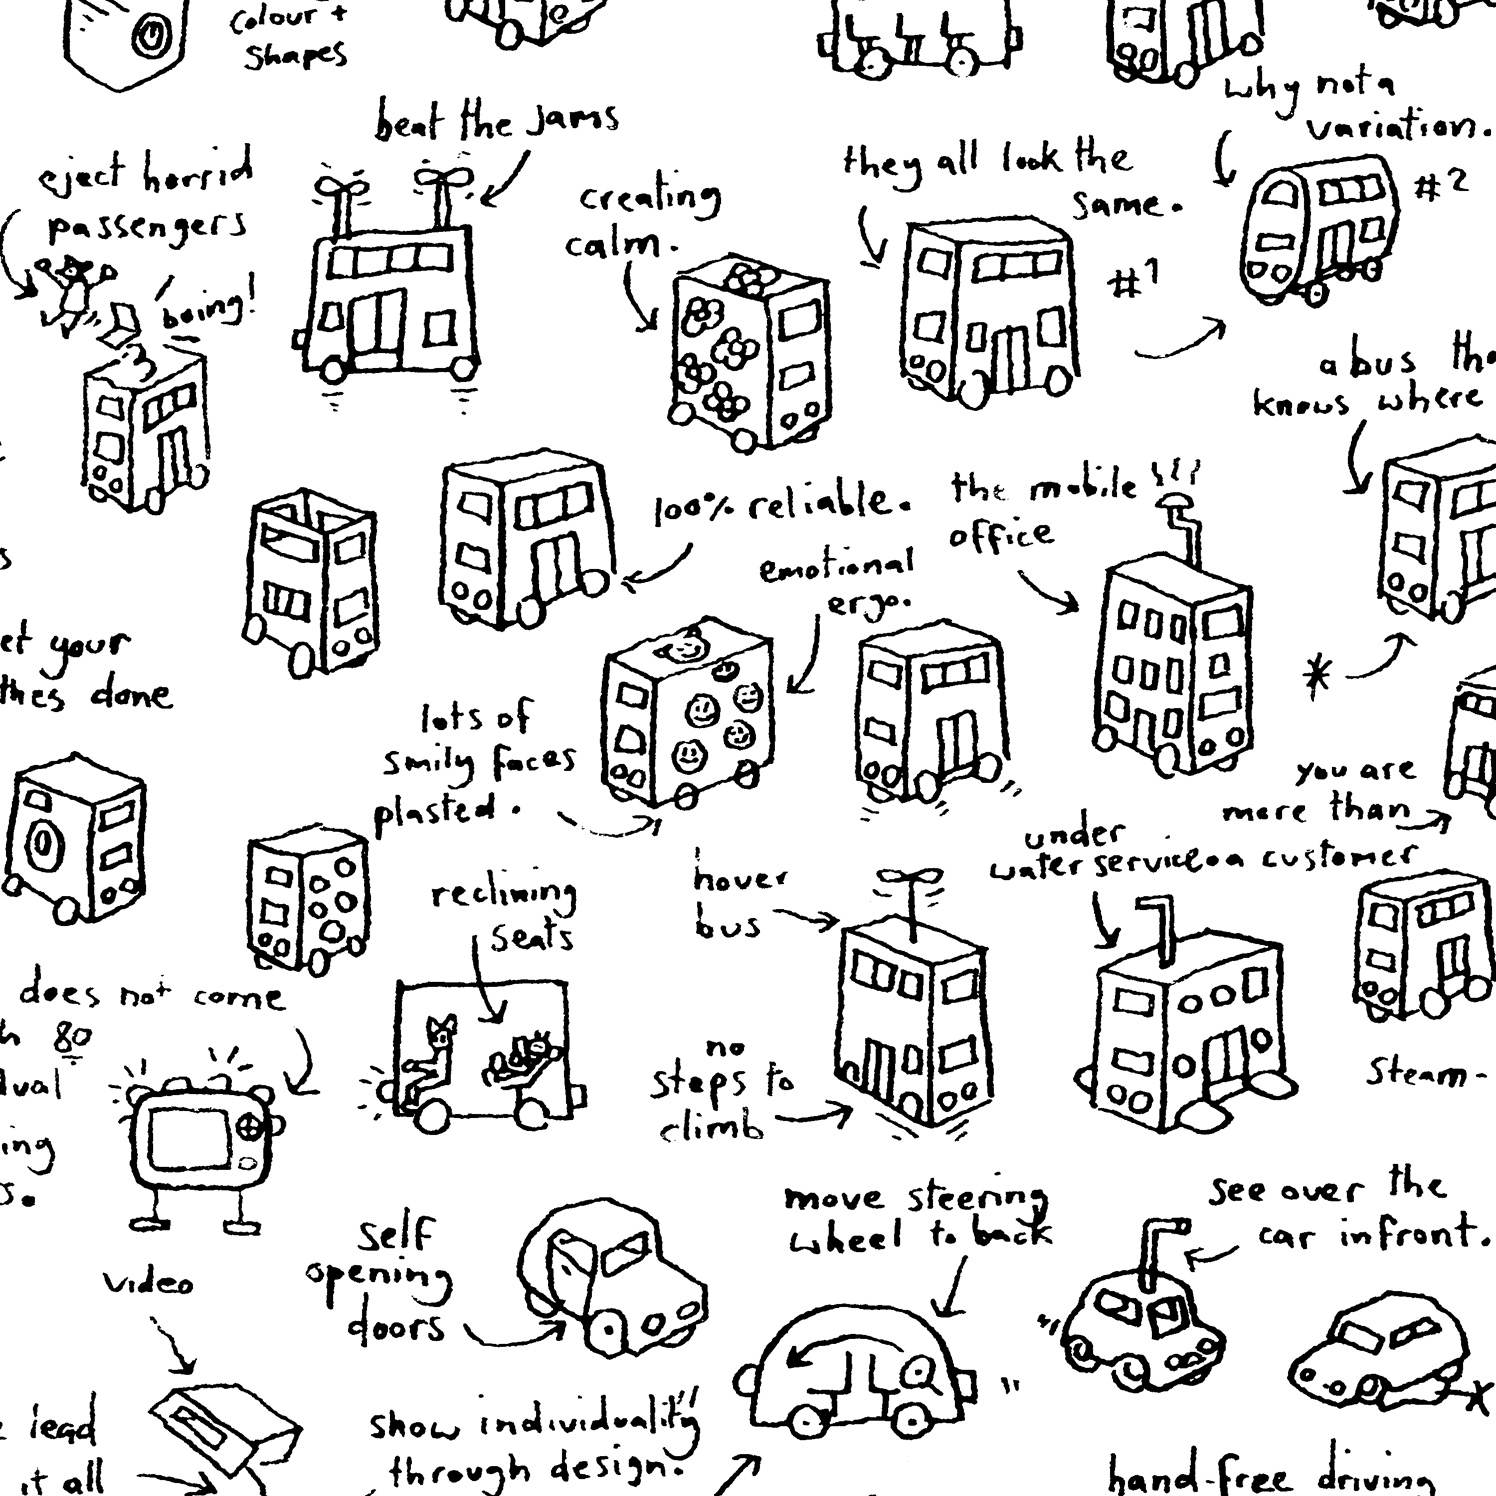 Brainstorm Hand Drawn London Buses 2